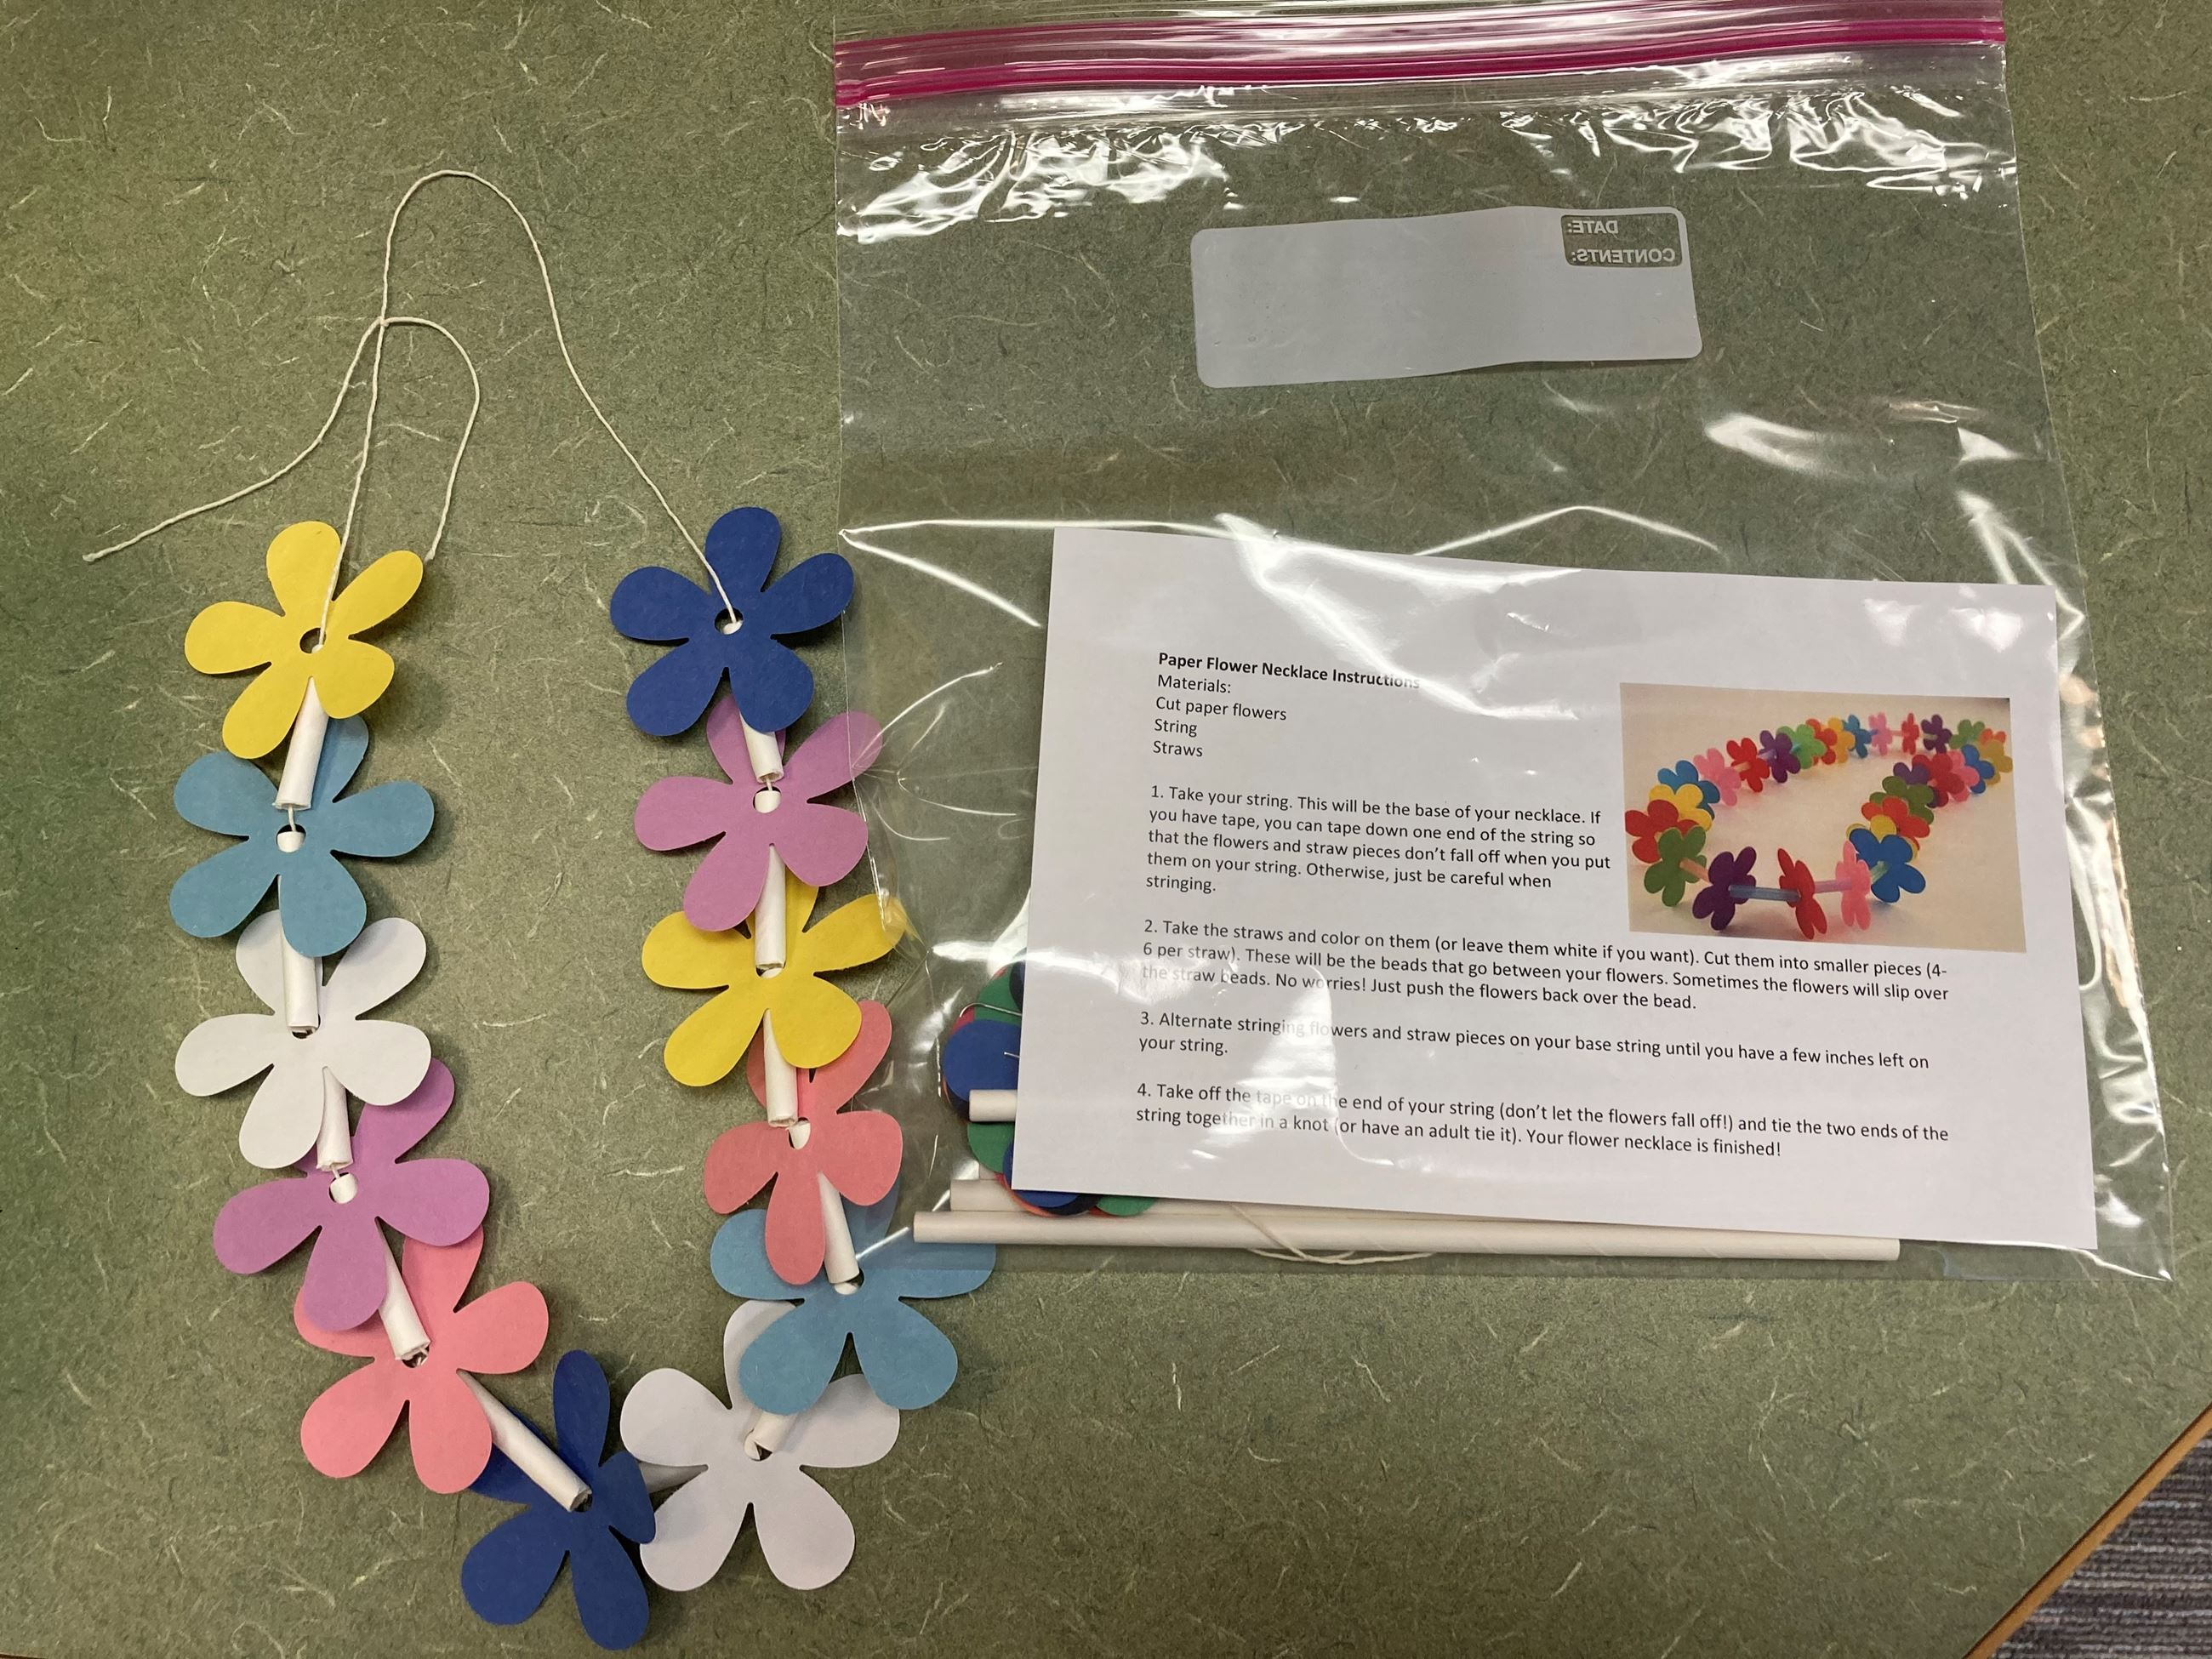 Flower necklace kit photo